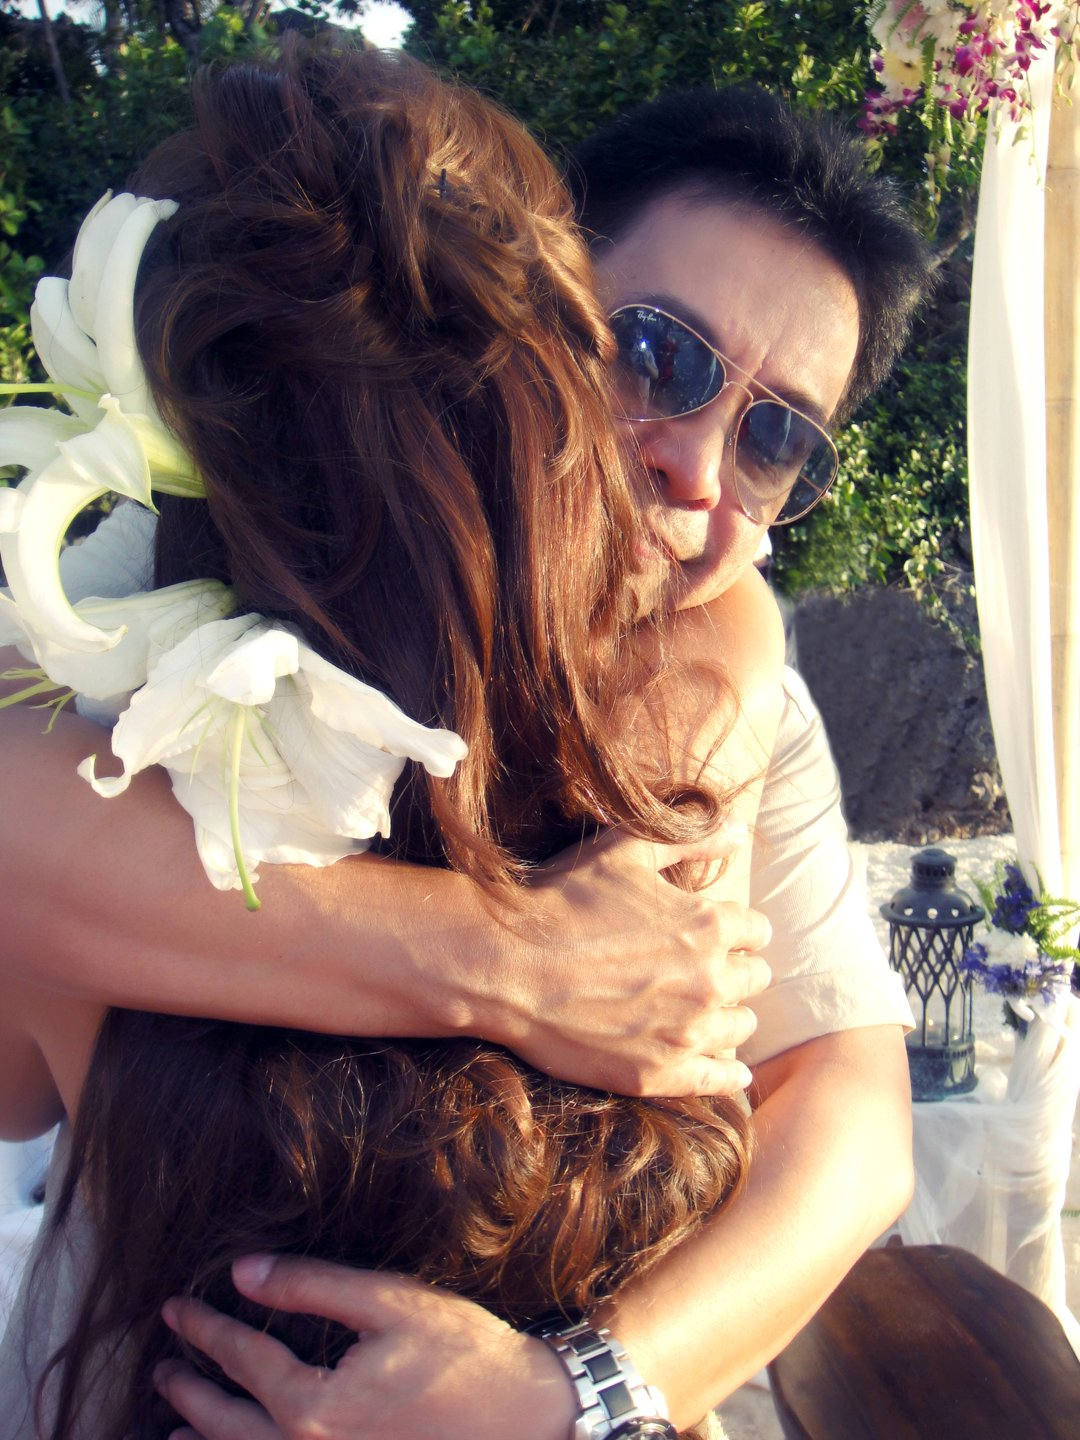 FATHER OF THE BRIDE. Rachel gets a big hug from her dad on her wedding. Photo from Rachel Alejandro